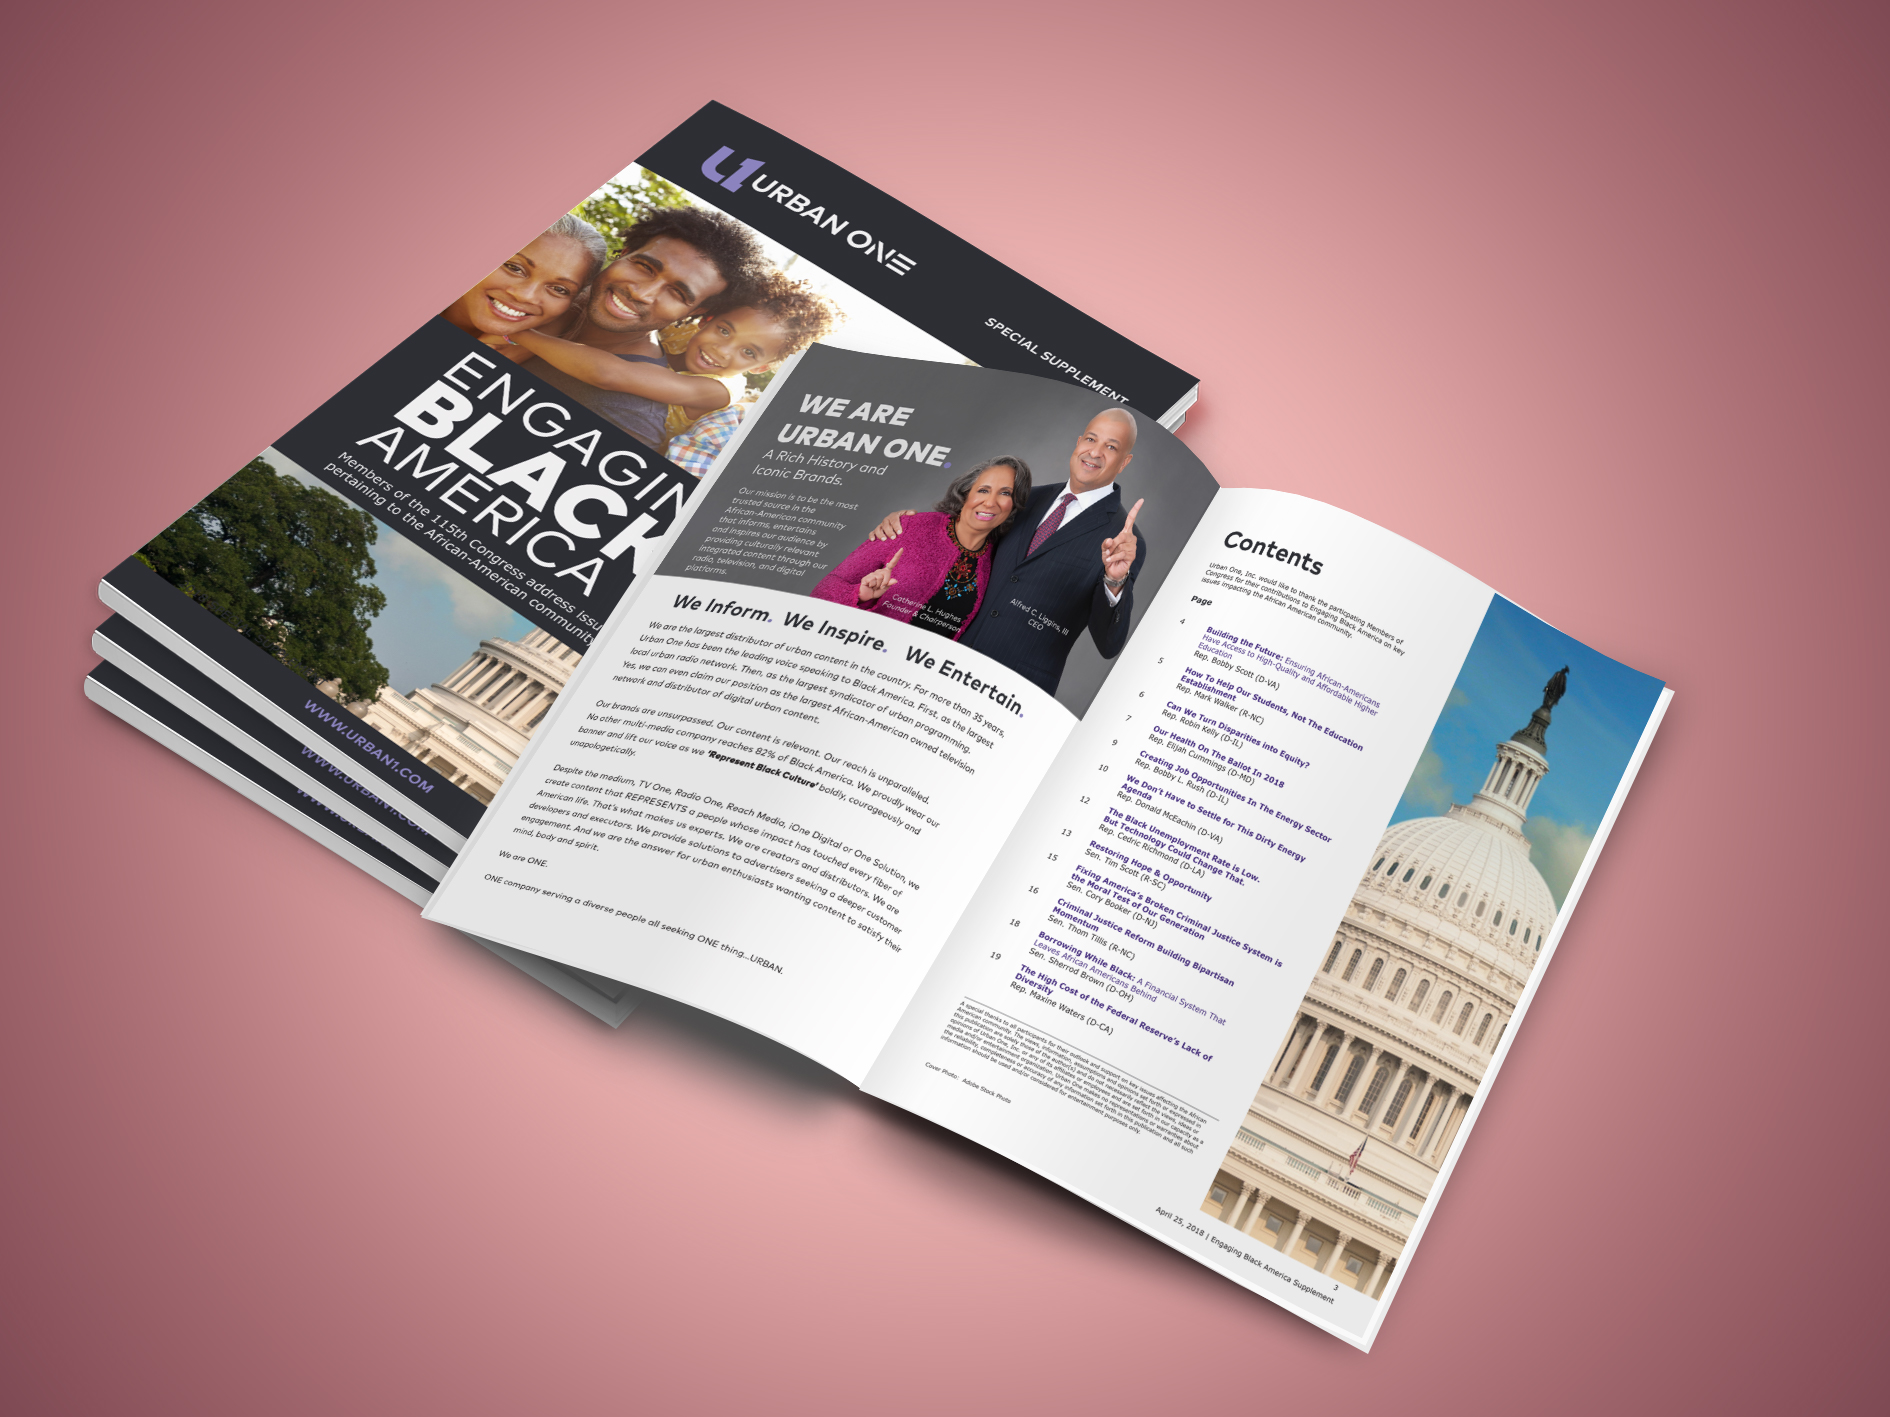 Engaging Black America Supplement - A political supplement created by Urban One, was designed and distributed to congressman and other officials on capitol hill. The supplement included 20 pages which included advertisements as well as oped's submitted by solicited congressman and senators.